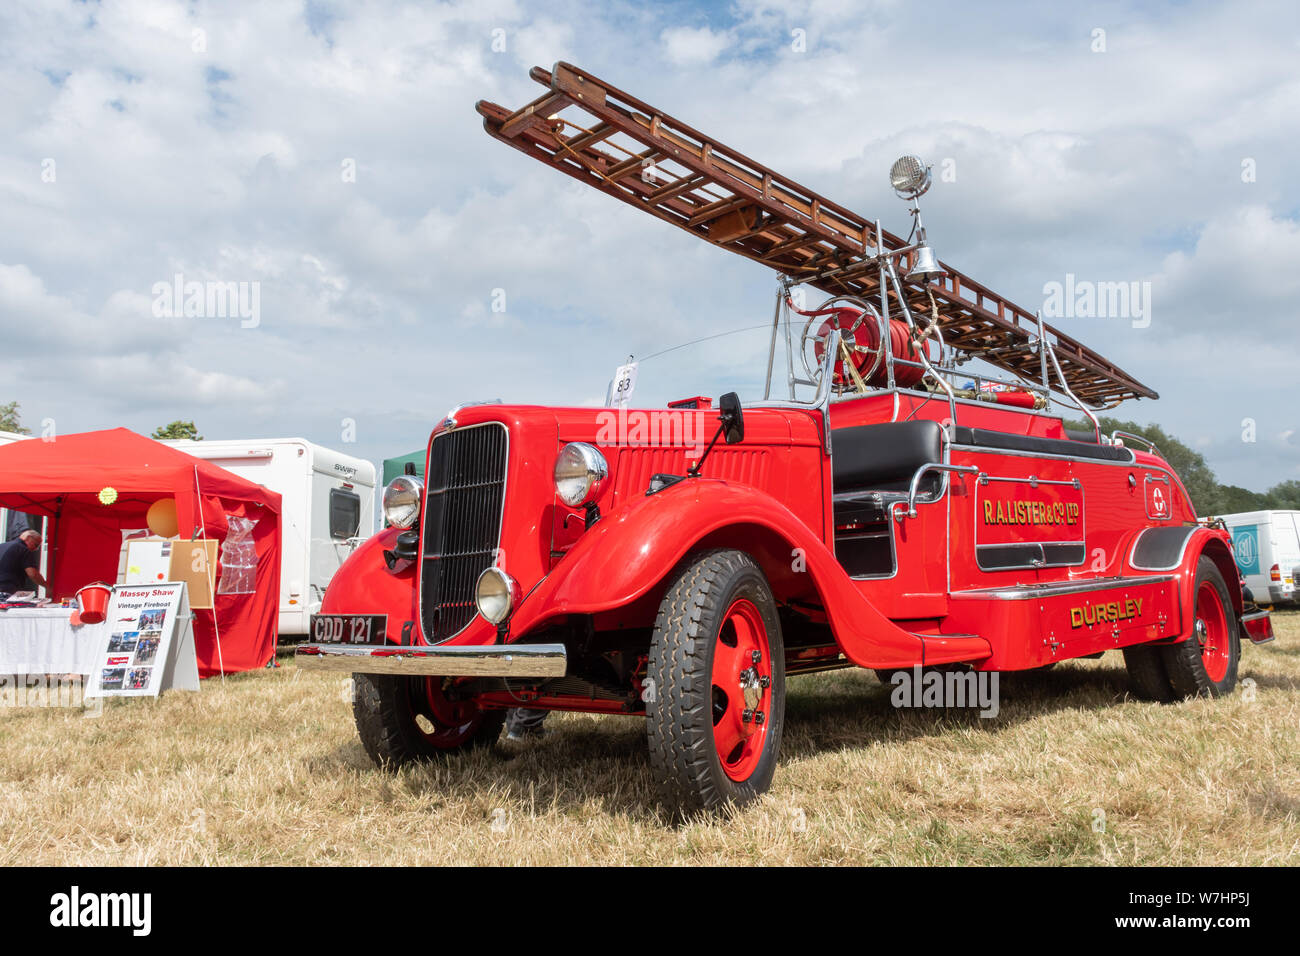 1937-fordson-fire-engine-originally-commissioned-by-r-a-lister-of-dursley-on-display-at-the-odiham-fire-show-2019-in-hampshire-uk-W7HP5J.jpg